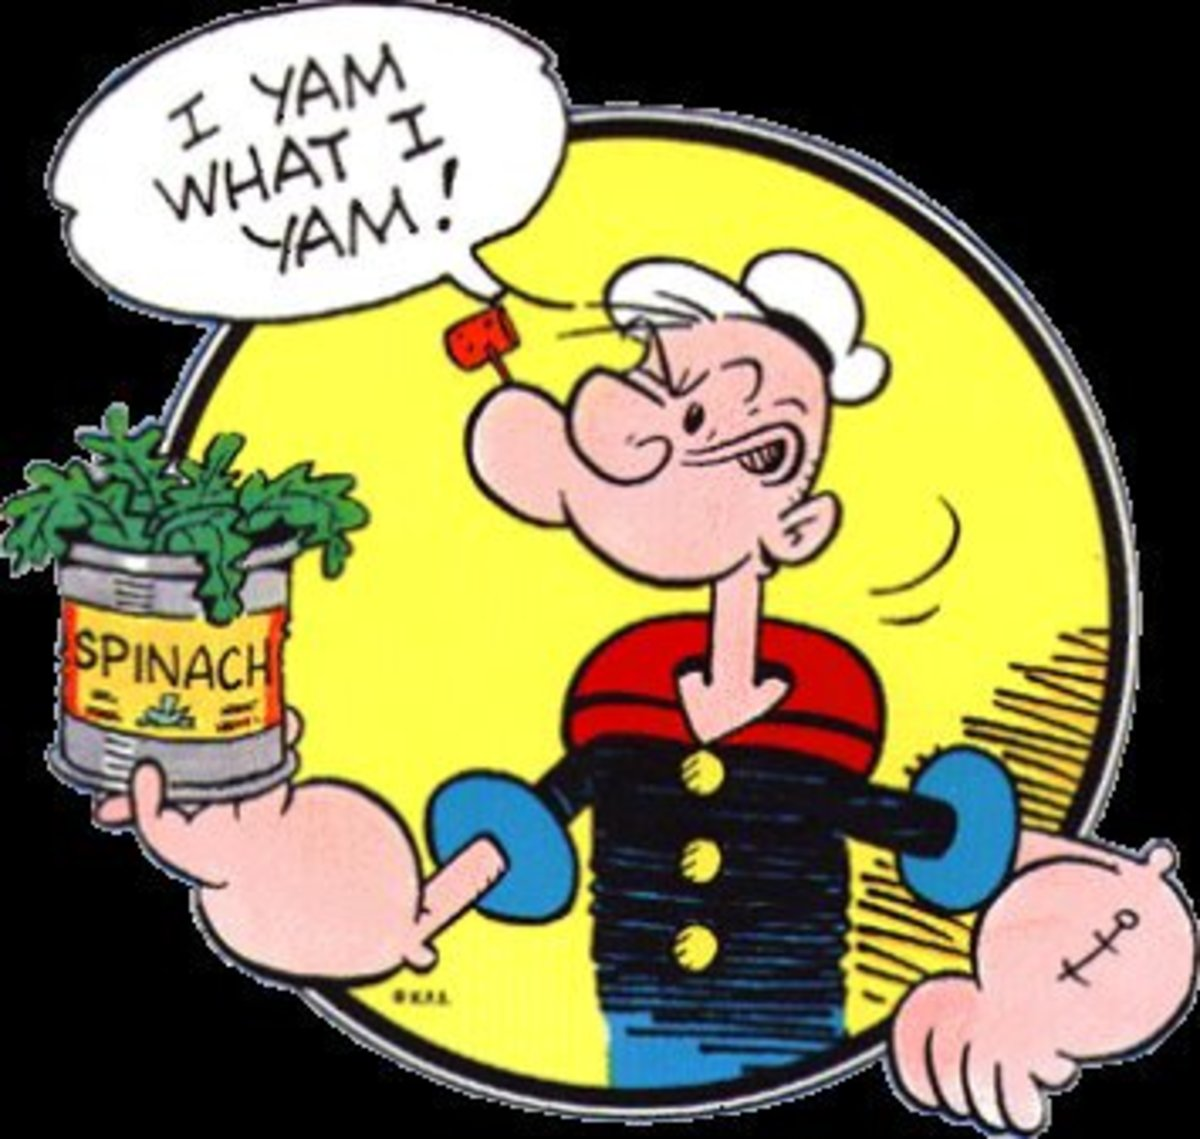 The cartoon Popeye The Sailor Man was notorious for making the connection between eating iron-rich spinach and good health (strong muscles for Popeye).